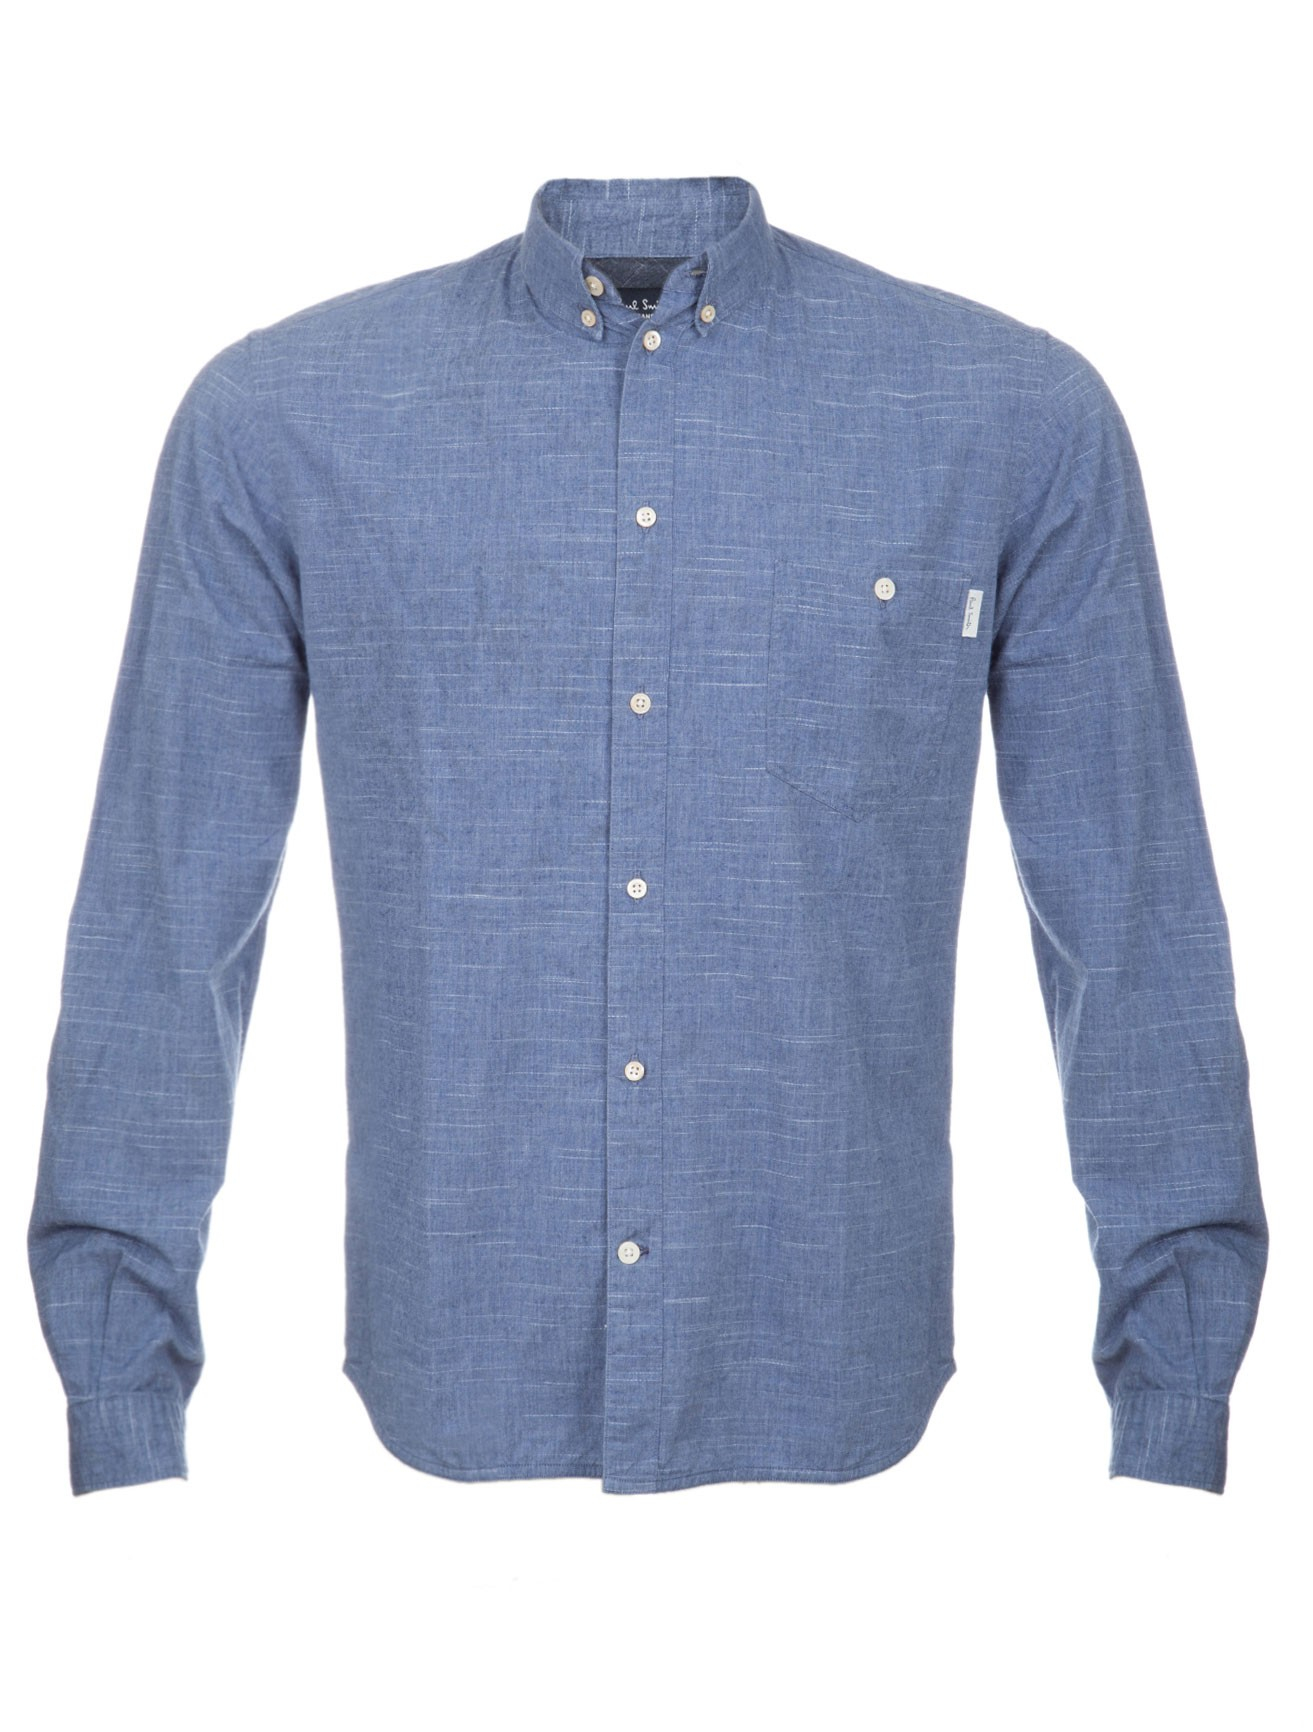 Find great deals on eBay for mens fitted button down shirts. Shop with confidence.